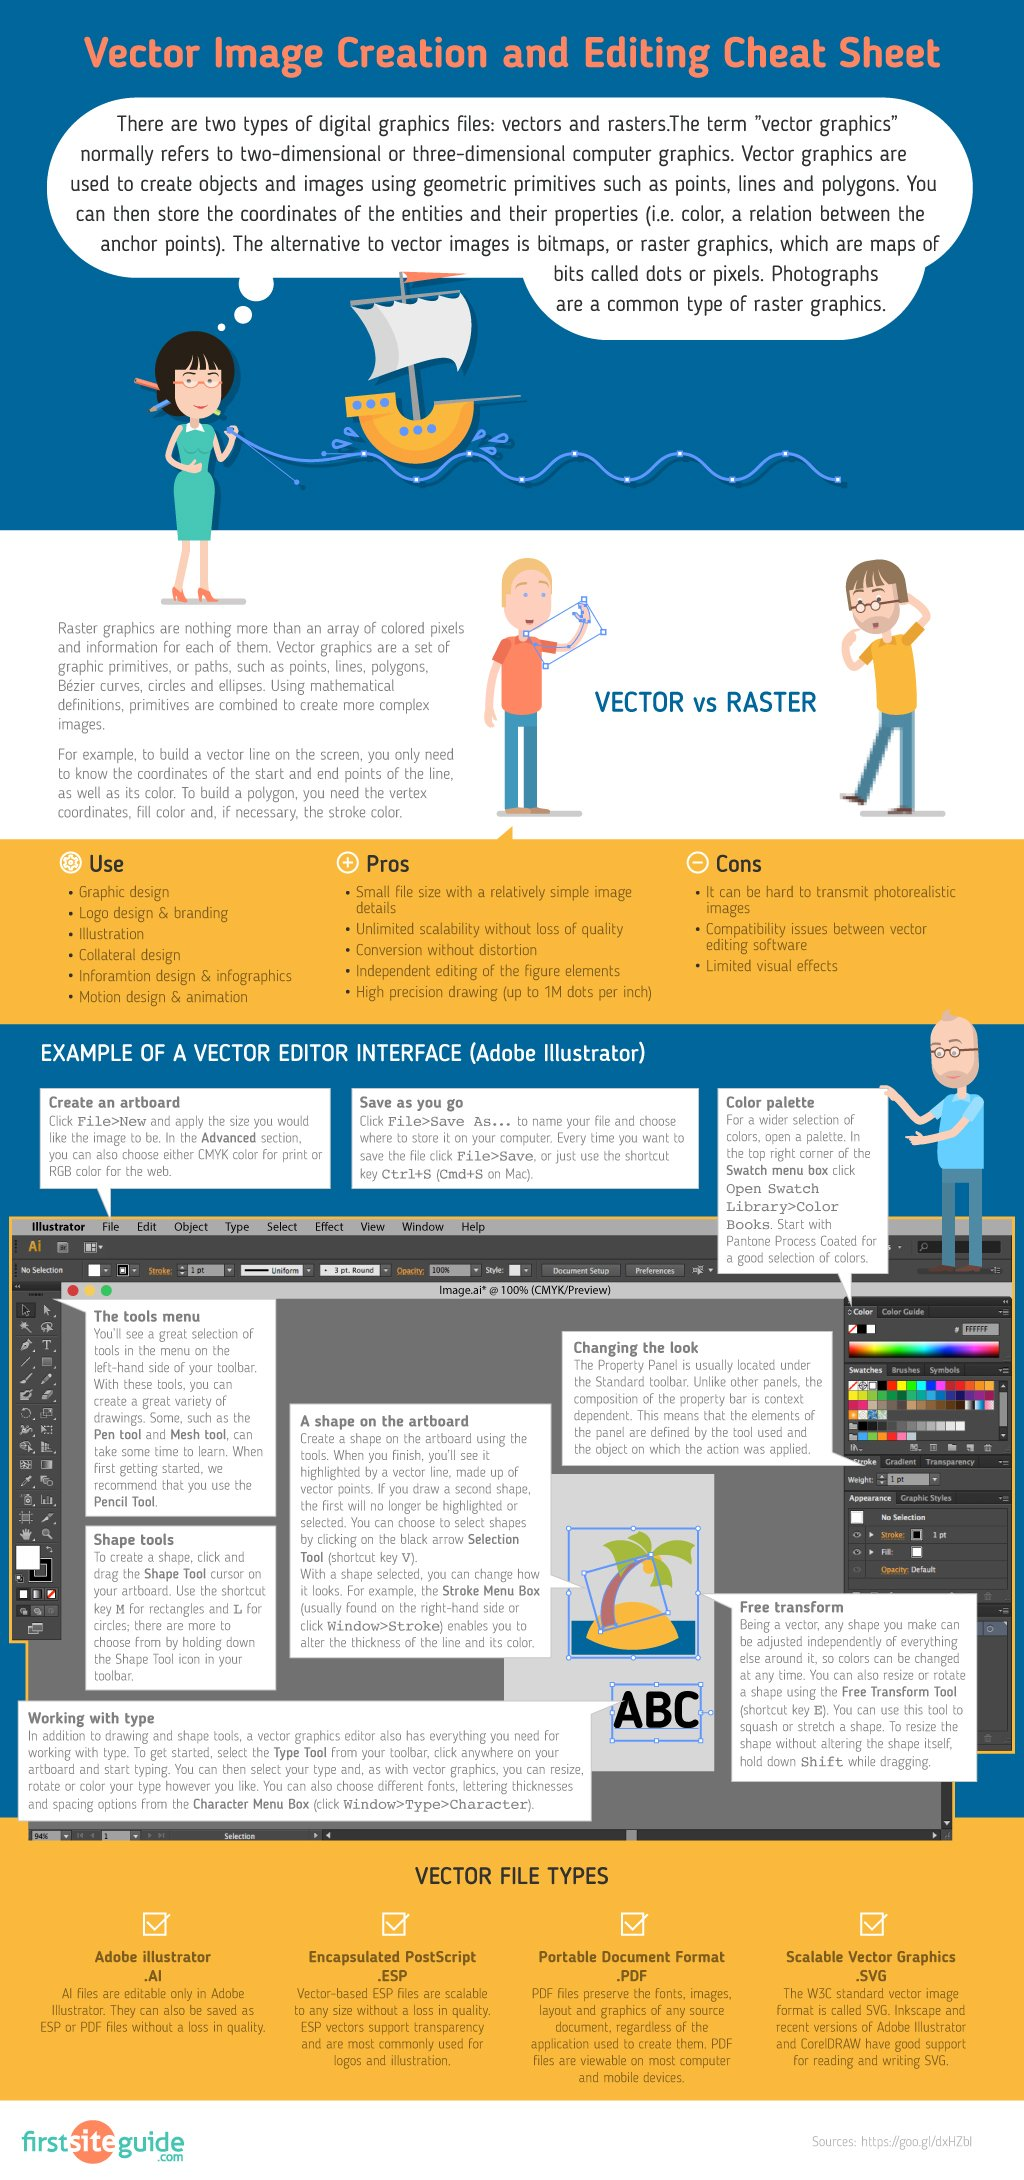 Vector image creation - Cheat Sheet